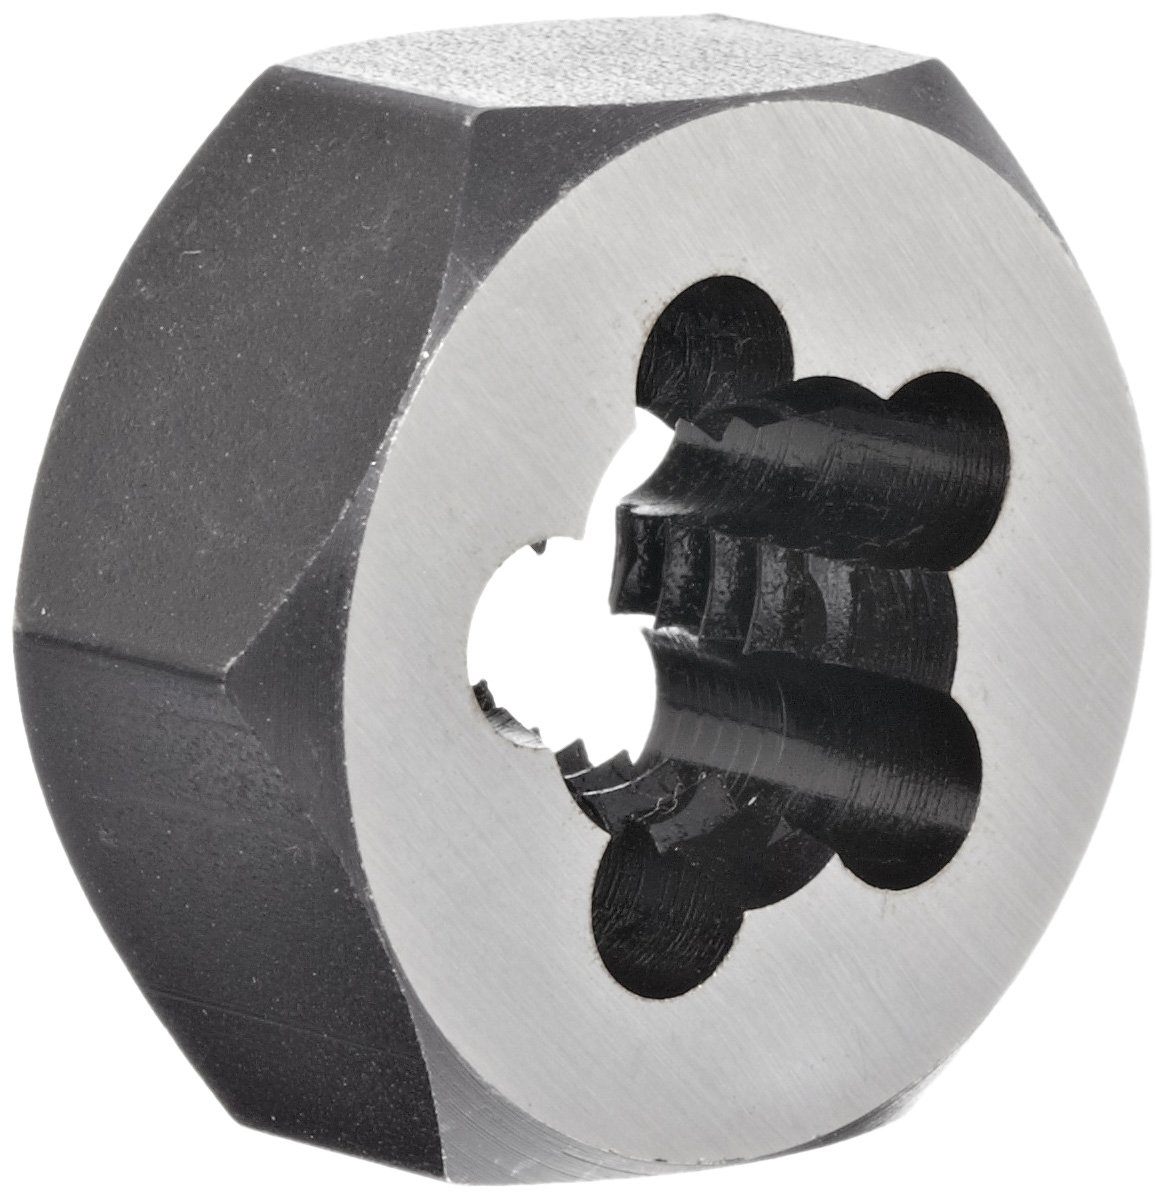 Union Butterfield 2325M Carbon Steel Hexagon Threading Die, Uncoated (Bright) Finish, M12-1.75 Thread Size